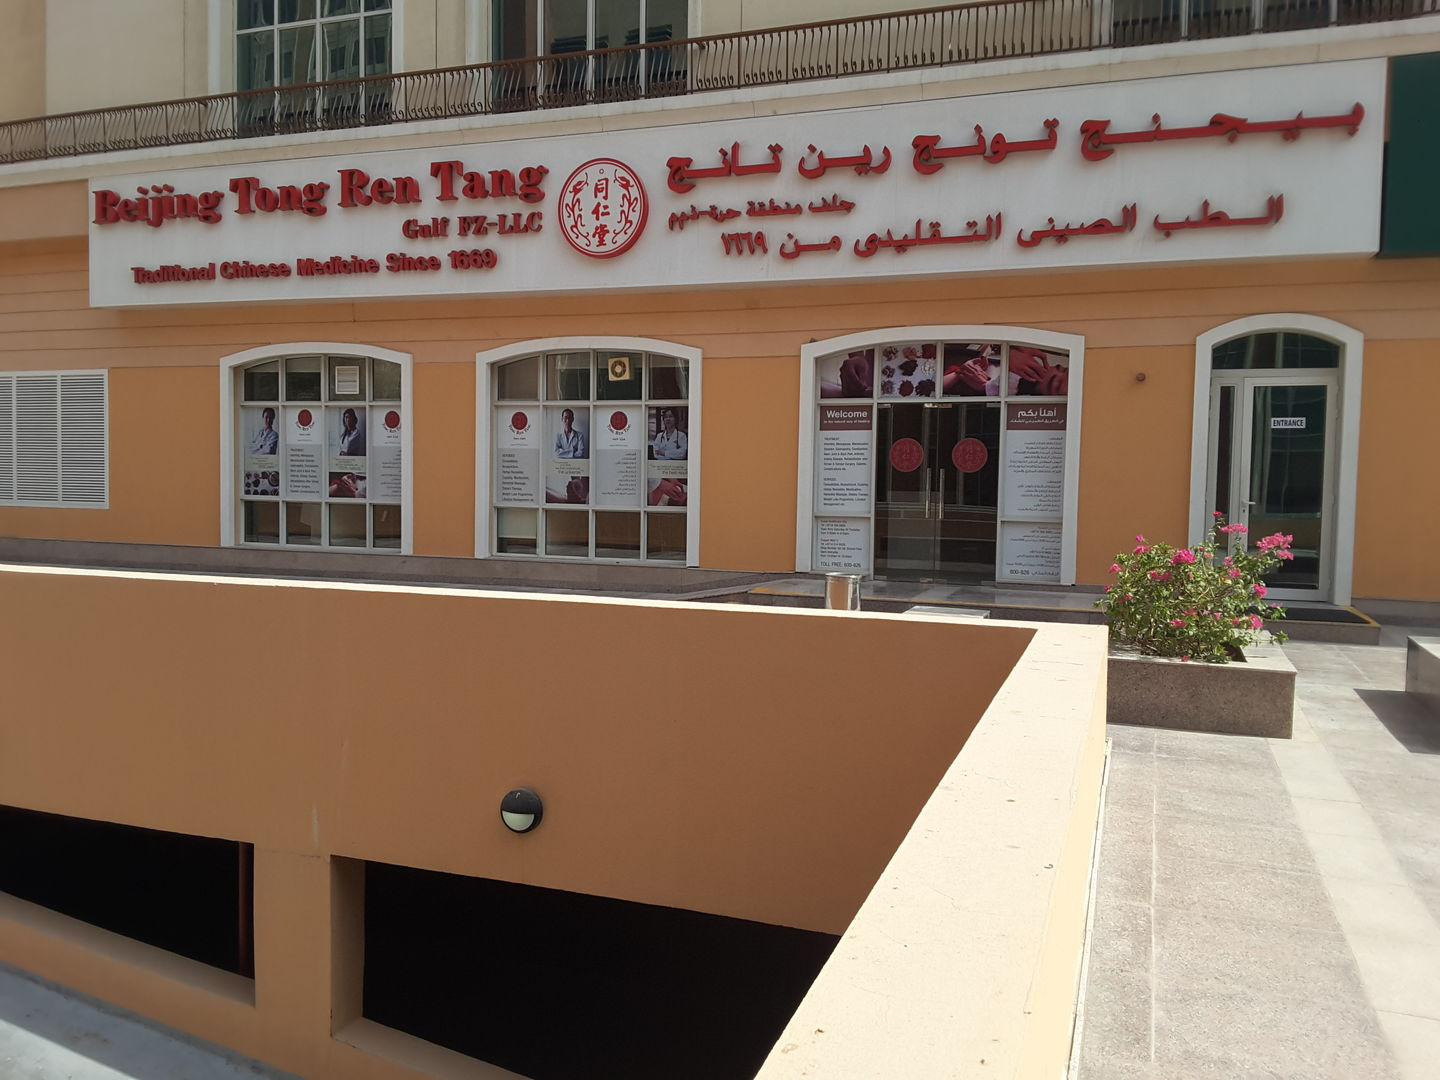 HiDubai-business-beijing-tong-ren-tang-gulf-medical-clinic-beauty-wellness-health-homeopathy-alternative-medicine-dubai-healthcare-city-umm-hurair-2-dubai